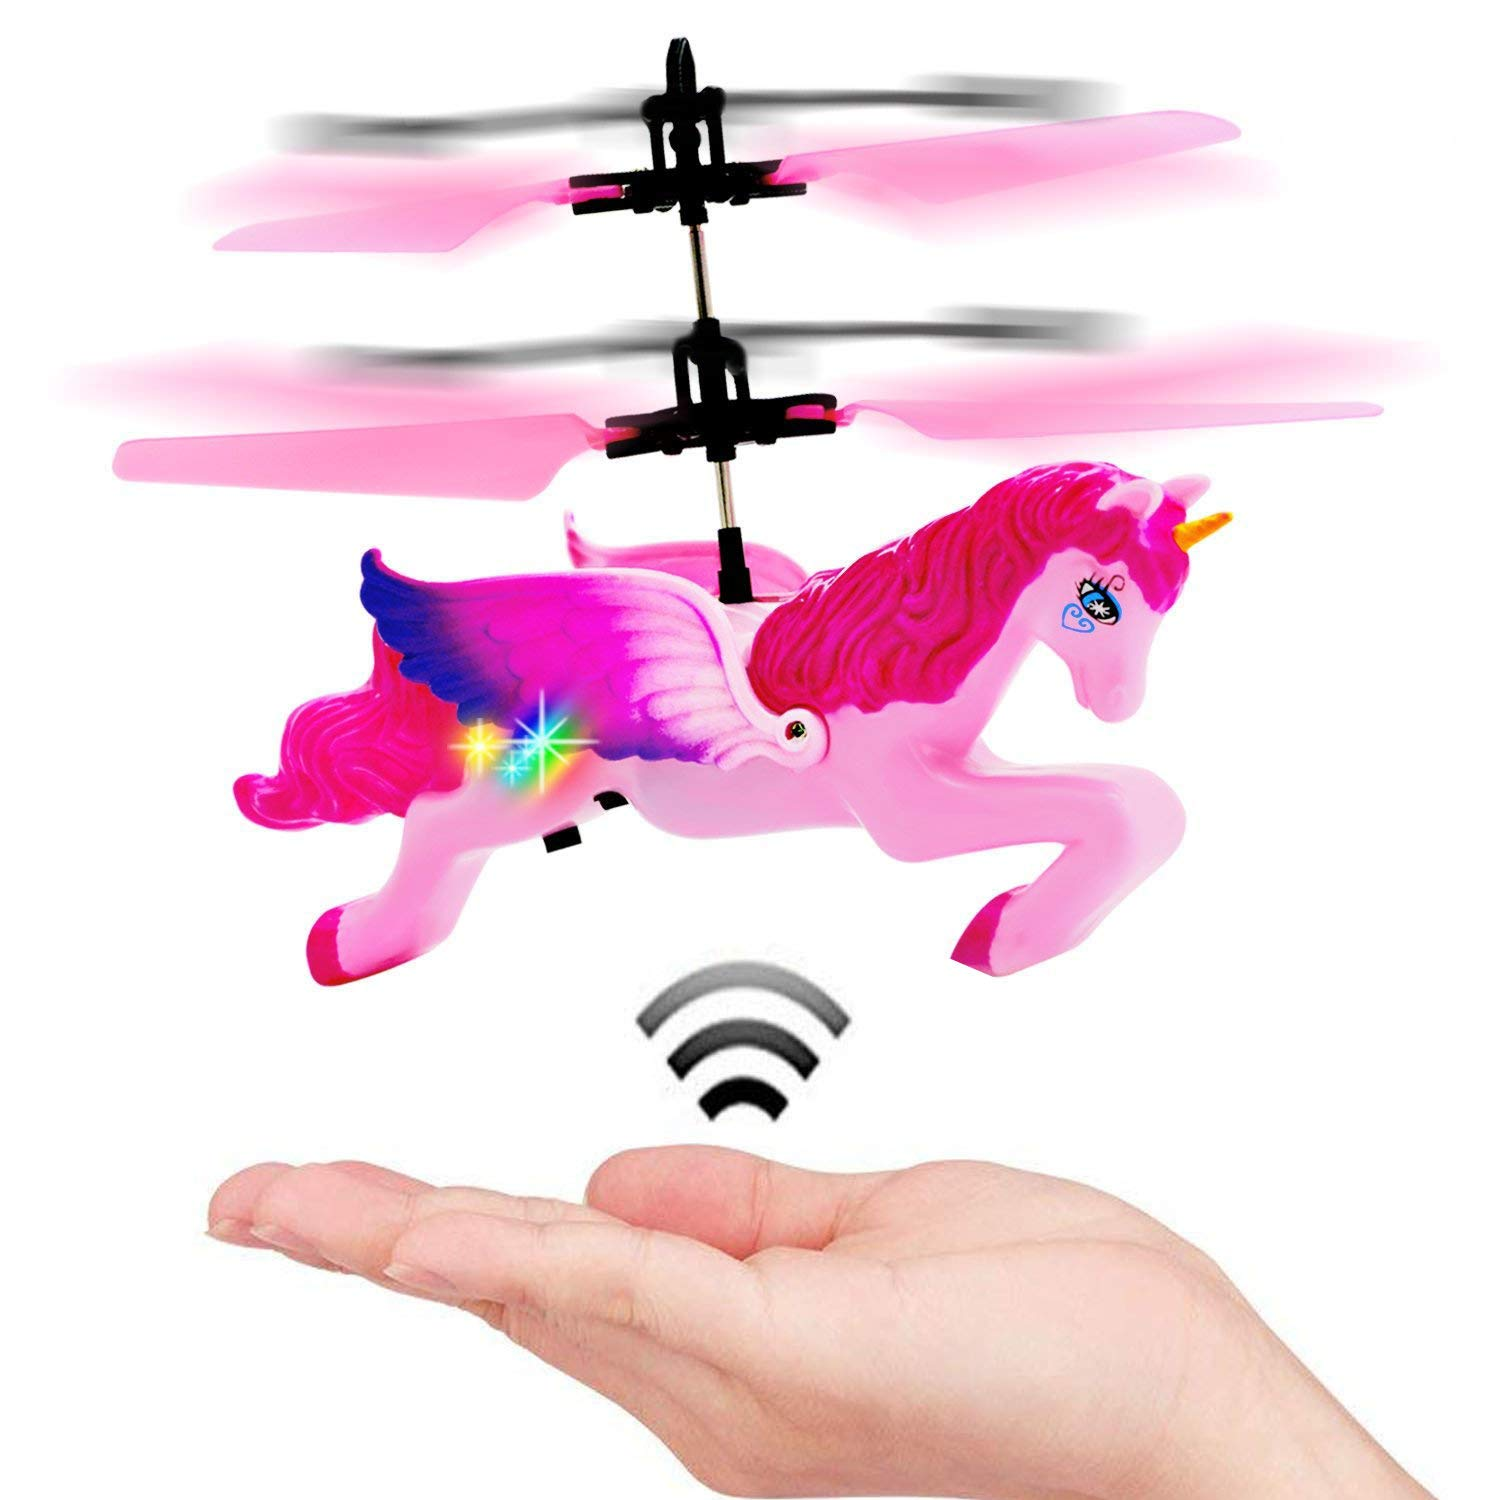 Lee Joseph Suitable for Girls Over 5 Years Old Unicorn Toys,Flying RC Pink Mini Remote and Hand Controlled Unicorn Helicopter Doll,Professional for Your Child